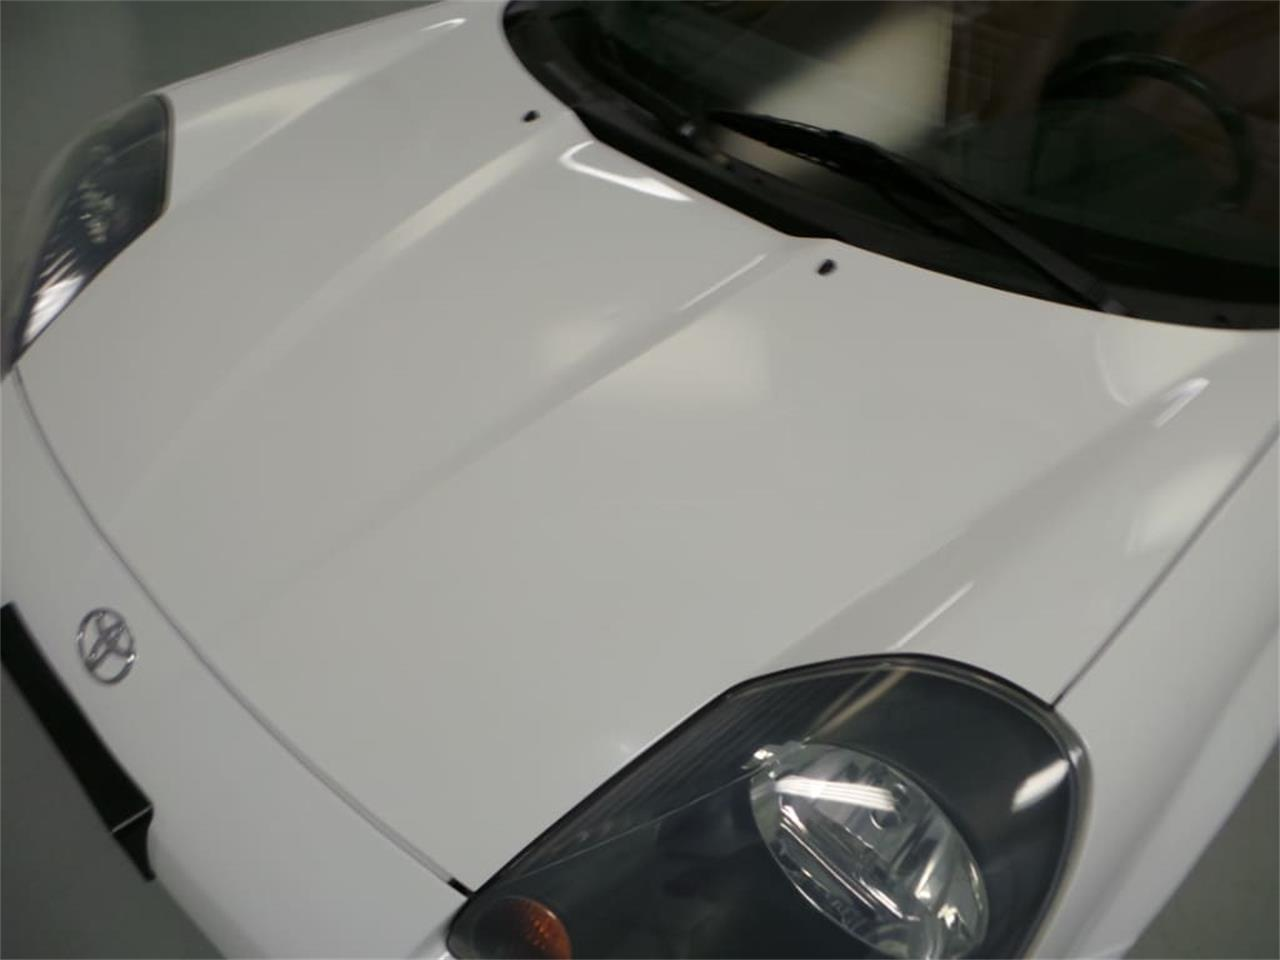 Large Picture of '01 Toyota MR2 Spyder located in Christiansburg Virginia - $13,908.00 - JL89